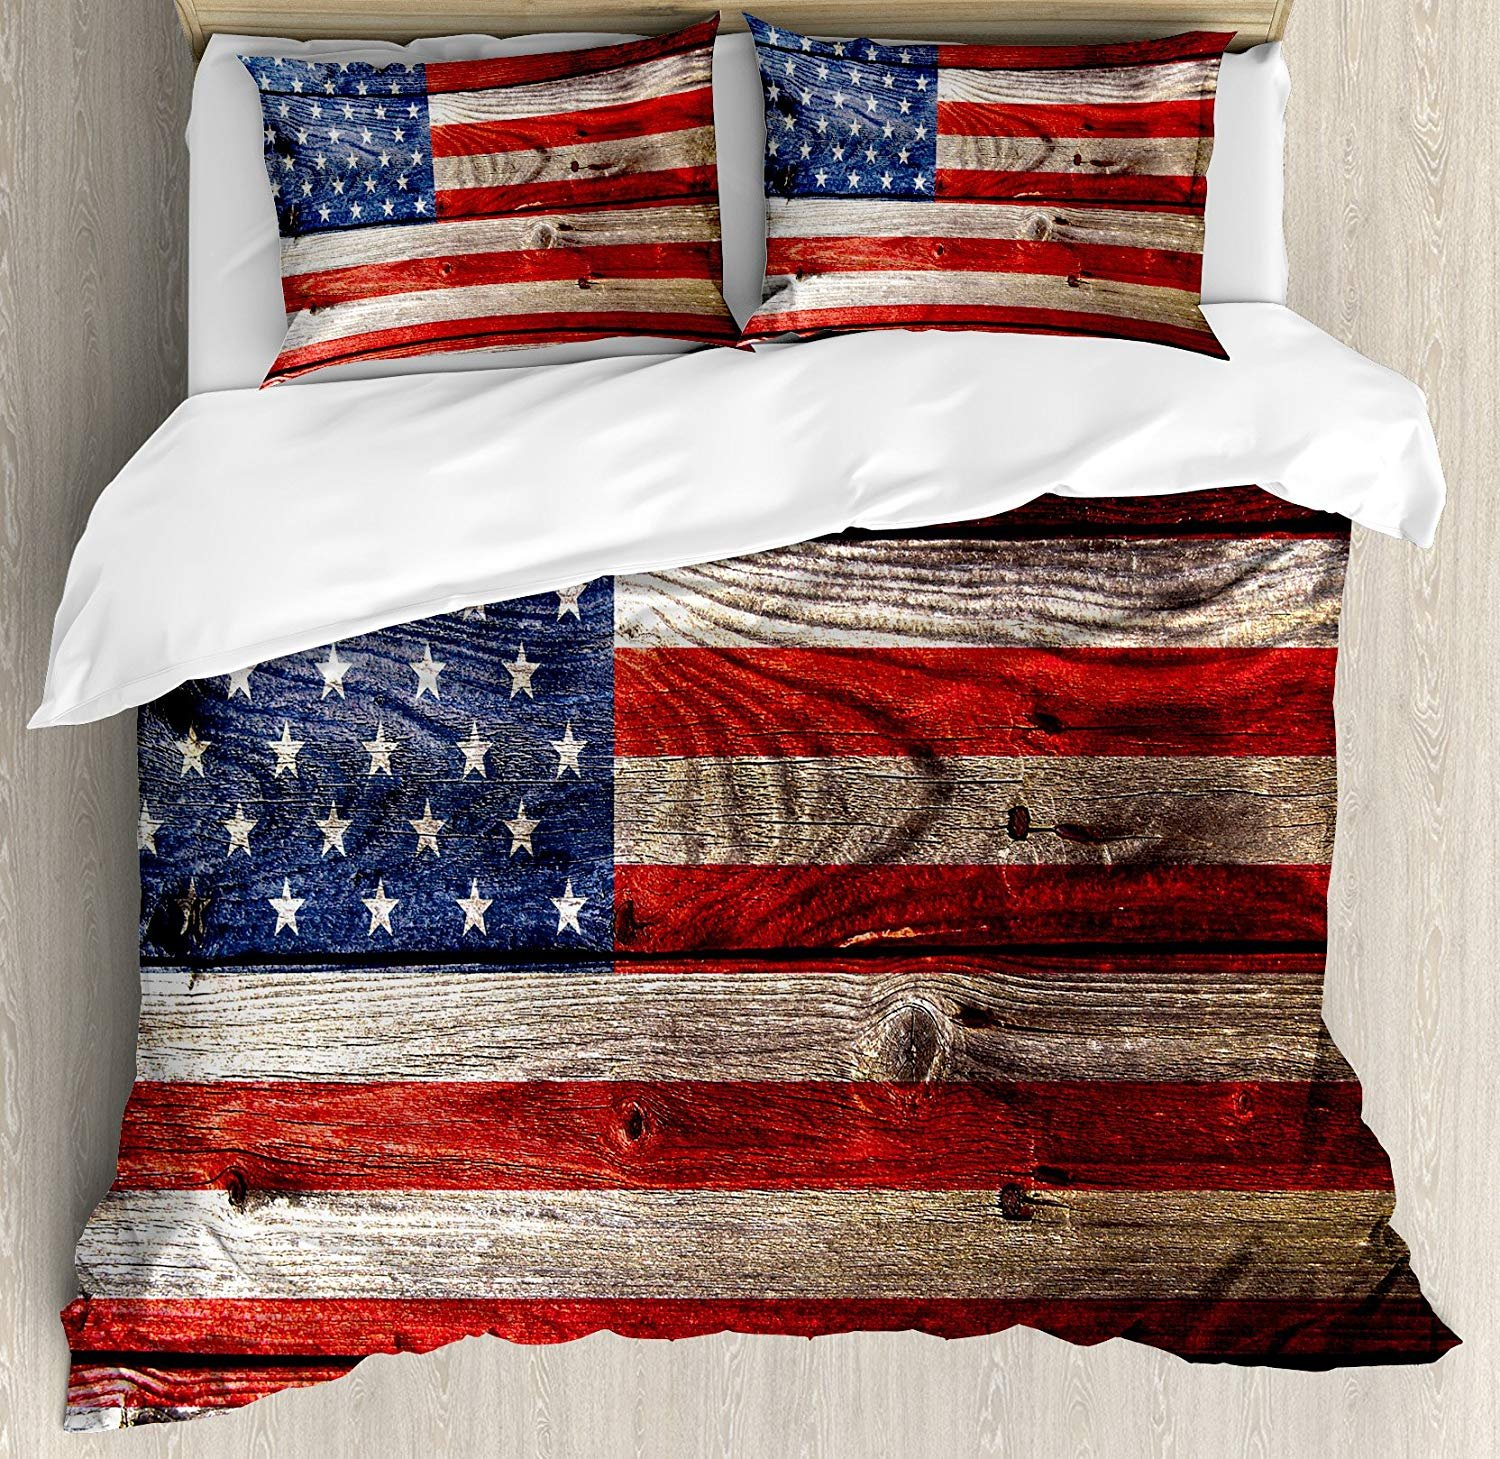 Rustic American USA Flag Twin Duvet Cover Sets 4 Piece Bedding Set Bedspread with 2 Pillow Sham, Flat Sheet for Adult/Kids/Teens, Independence Day Weathered Retro Wood Wall Country Emblem